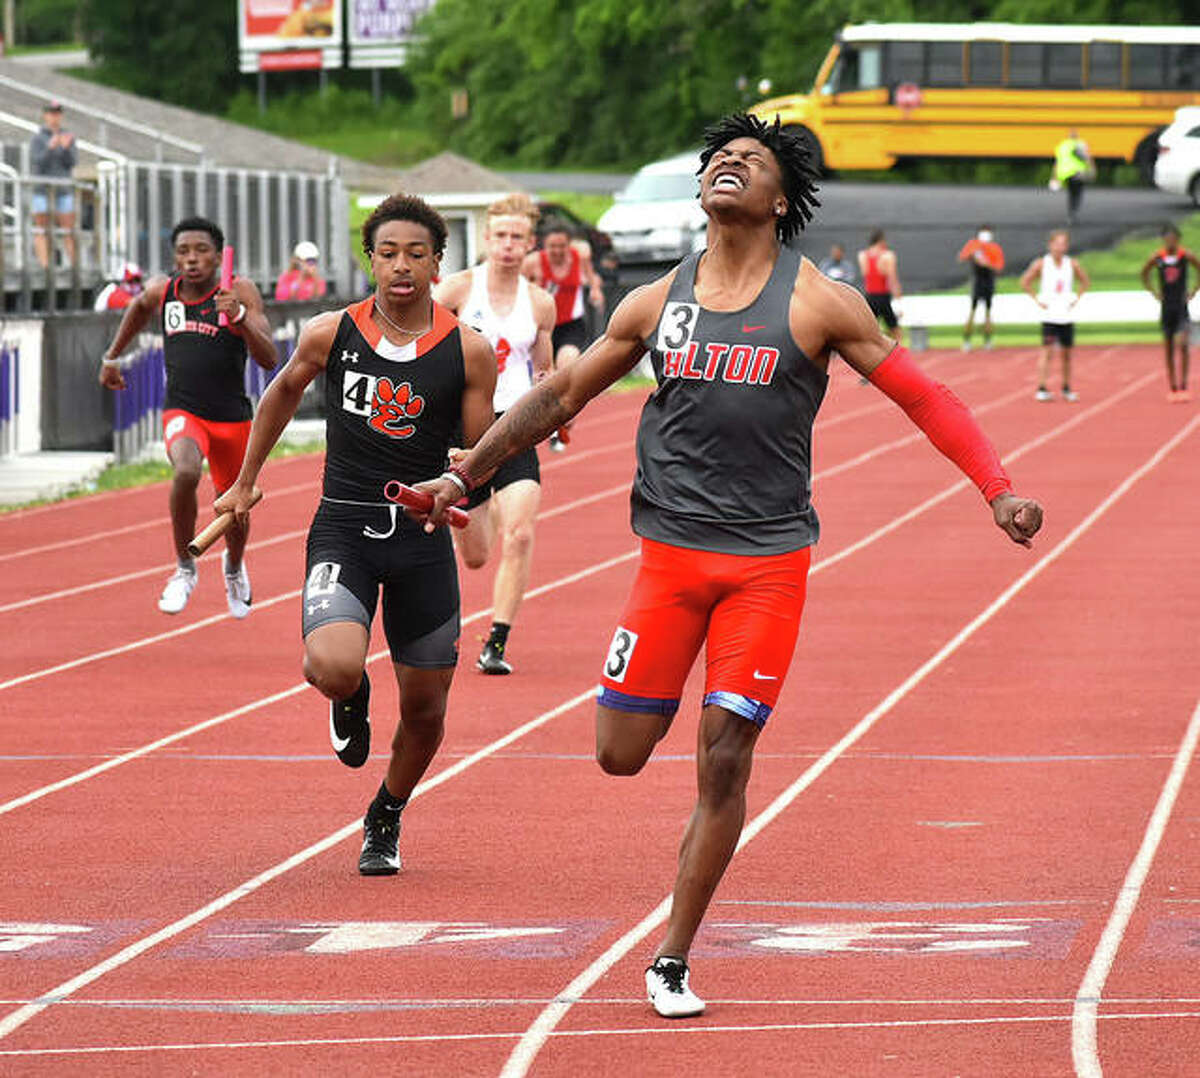 Alton's Marty Boey (right) and teammates Trae Corby, Gerad Bruce, Simon McClaine finished 20th in the 4x400 meter relay at the IHSA Class 3A State Track and Field Meet in Charleston. Boey is shown crossing the finish line, helping the Redbirds' win the 4x100 relay earlier this season at the Madison County Large-Schools meet at Collinsville.